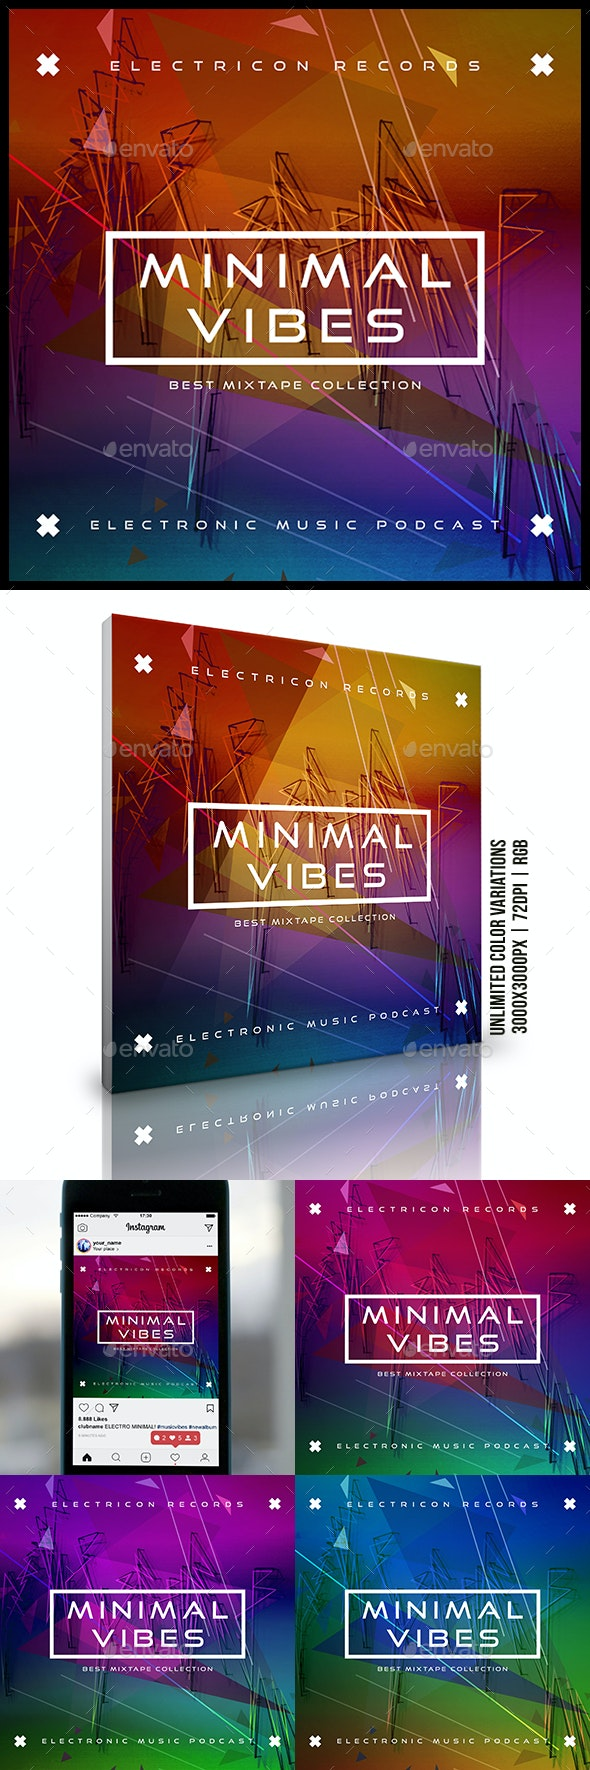 Minimal Vibes Electronic Music Album Cover Artwork Template - Miscellaneous Social Media